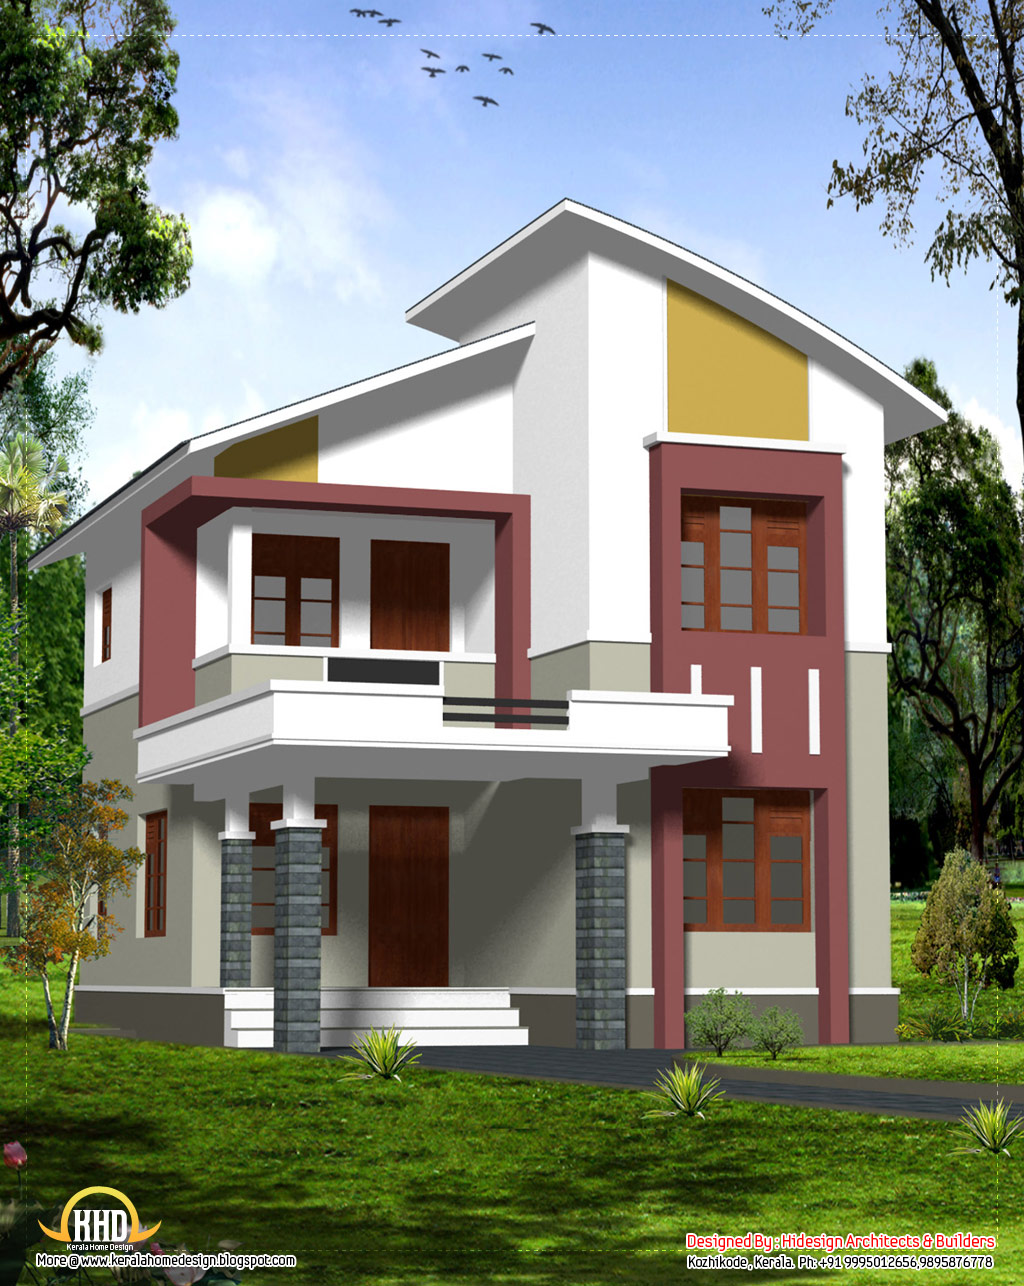 Budget home design 2140 sq ft kerala home design and for Homes on budget com